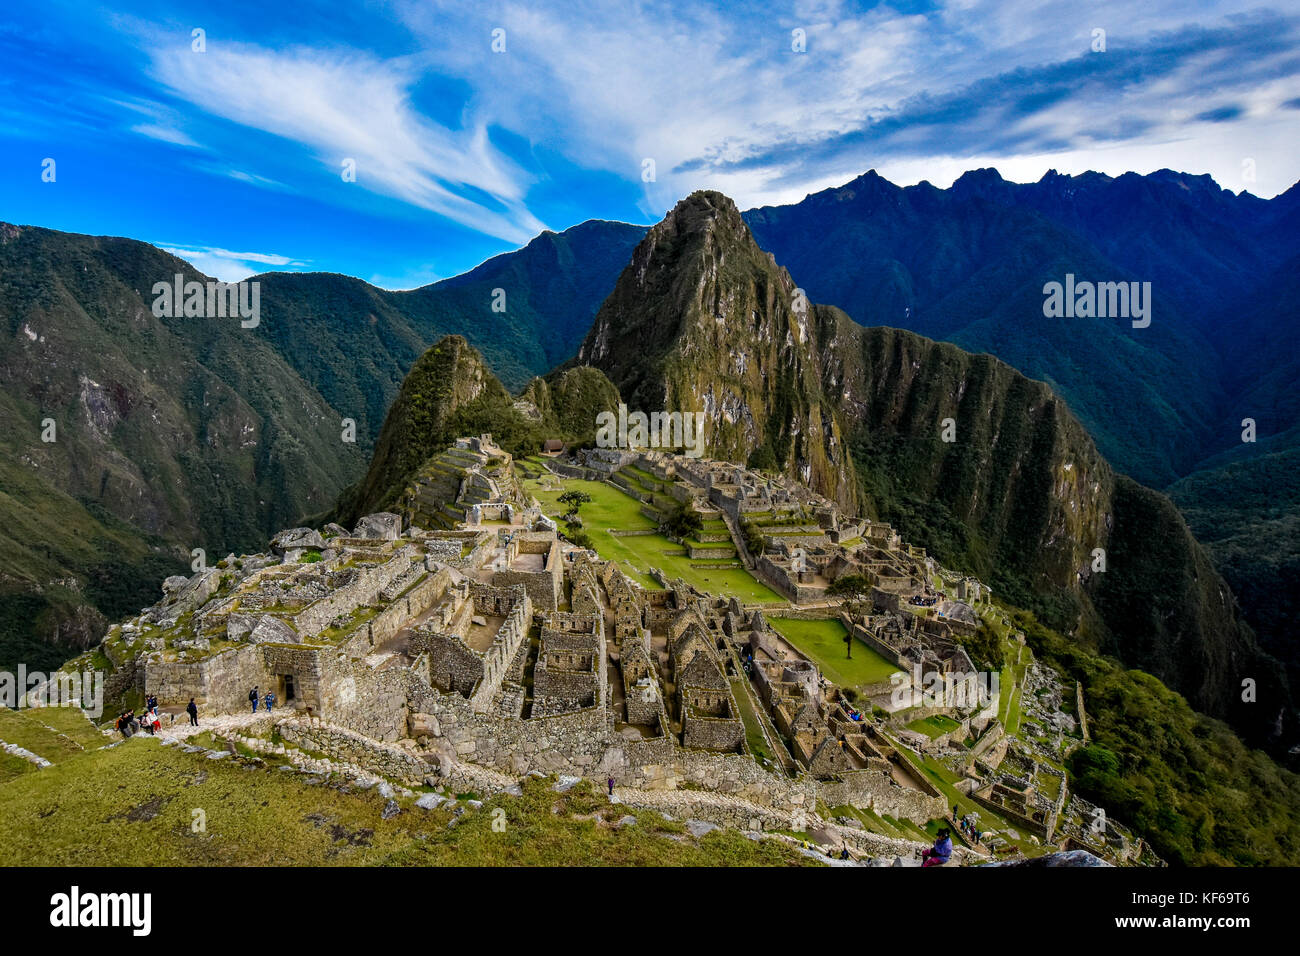 Machu Picchu at its best. One of the most amazing places I've ever seen - Stock Image